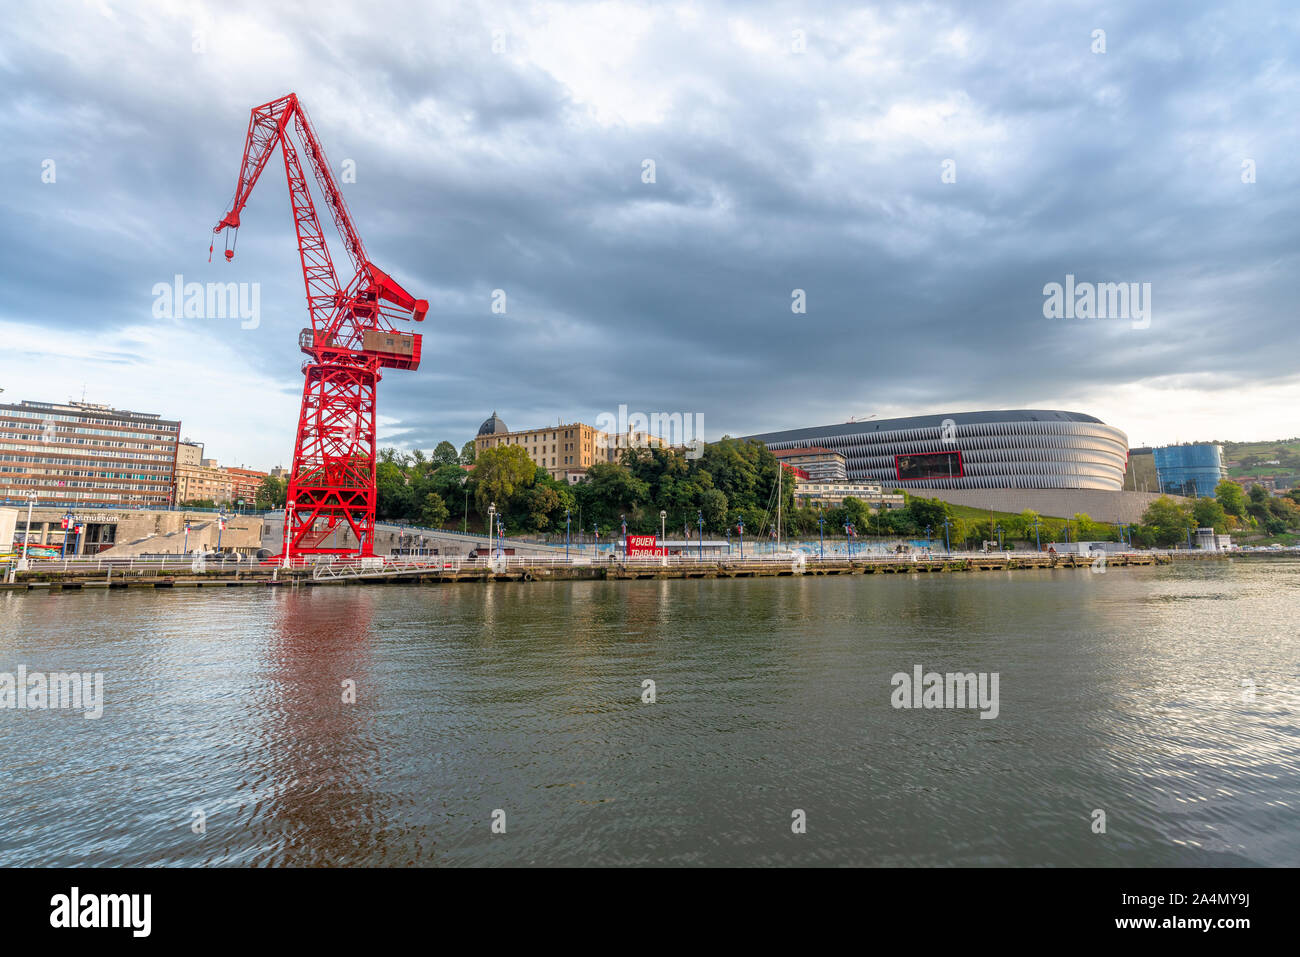 15/09-19, Bilbao, Spain. The crane, named La Carola, is a left over from the areas industrial past. The San Mamés soccer stadium, home to Athletic Bil Stock Photo